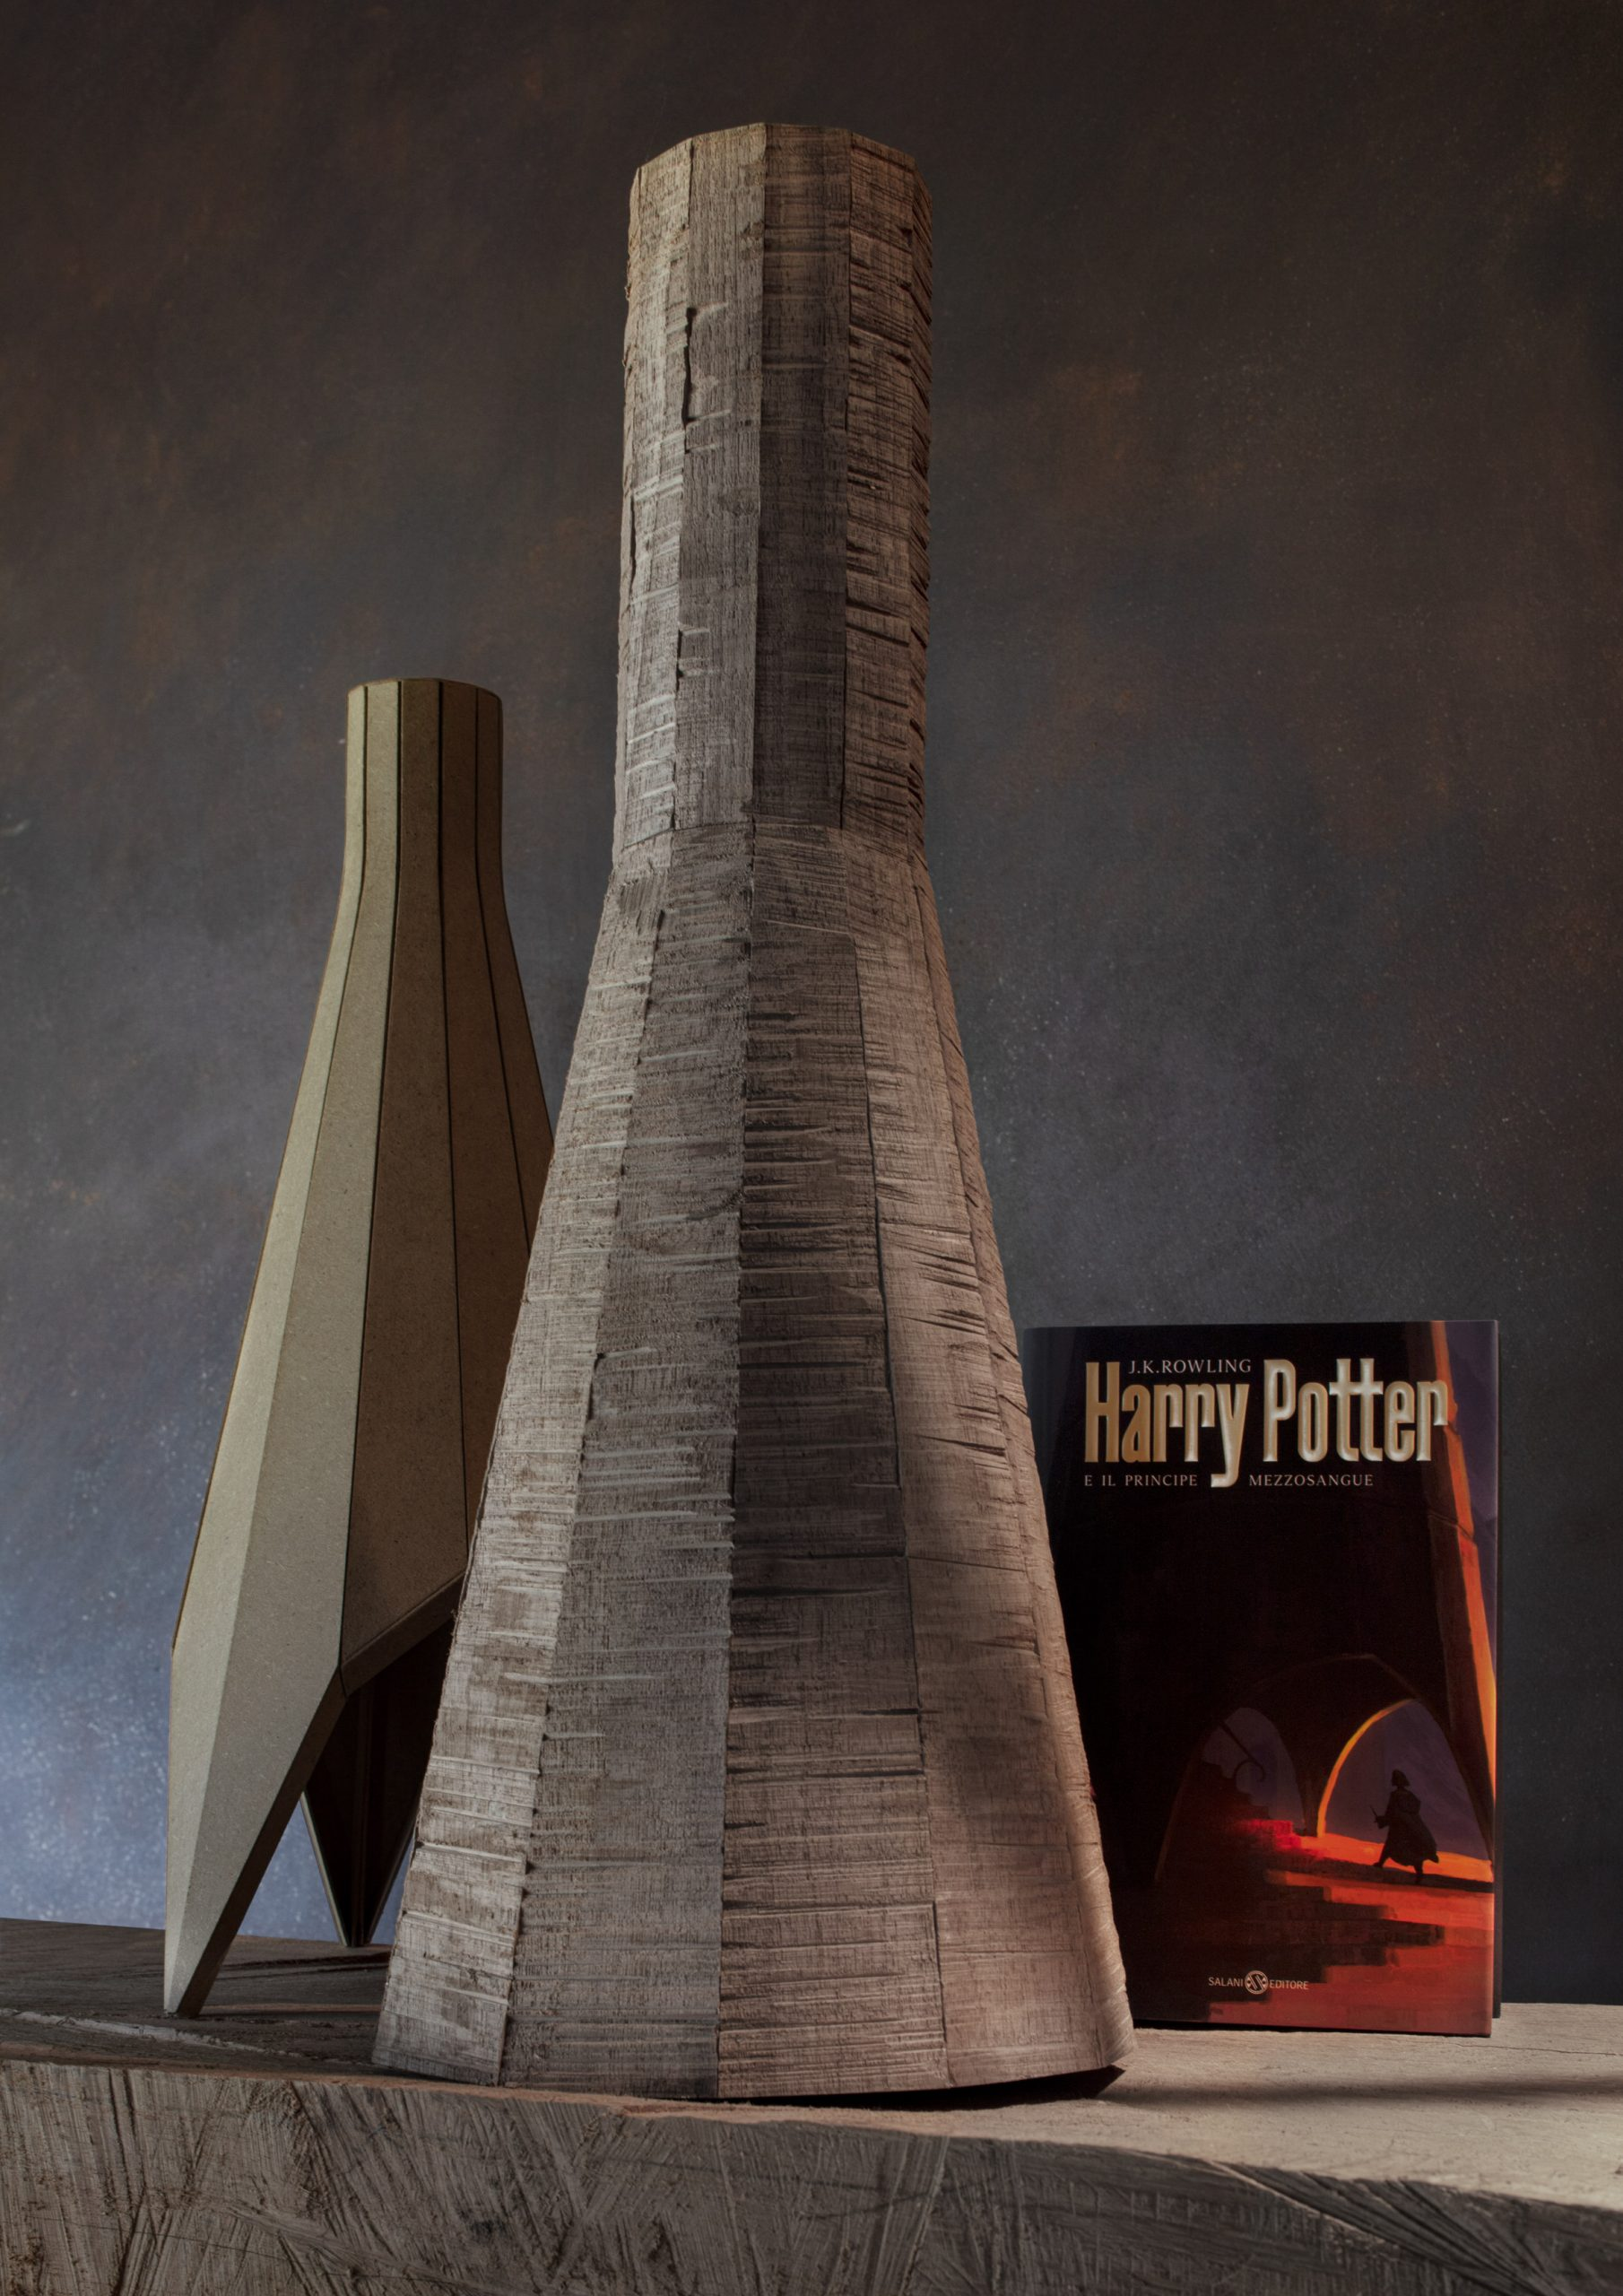 Italian version of Harry Potter and the Half-Blood prince with a wooden model by Michele De Lucchi